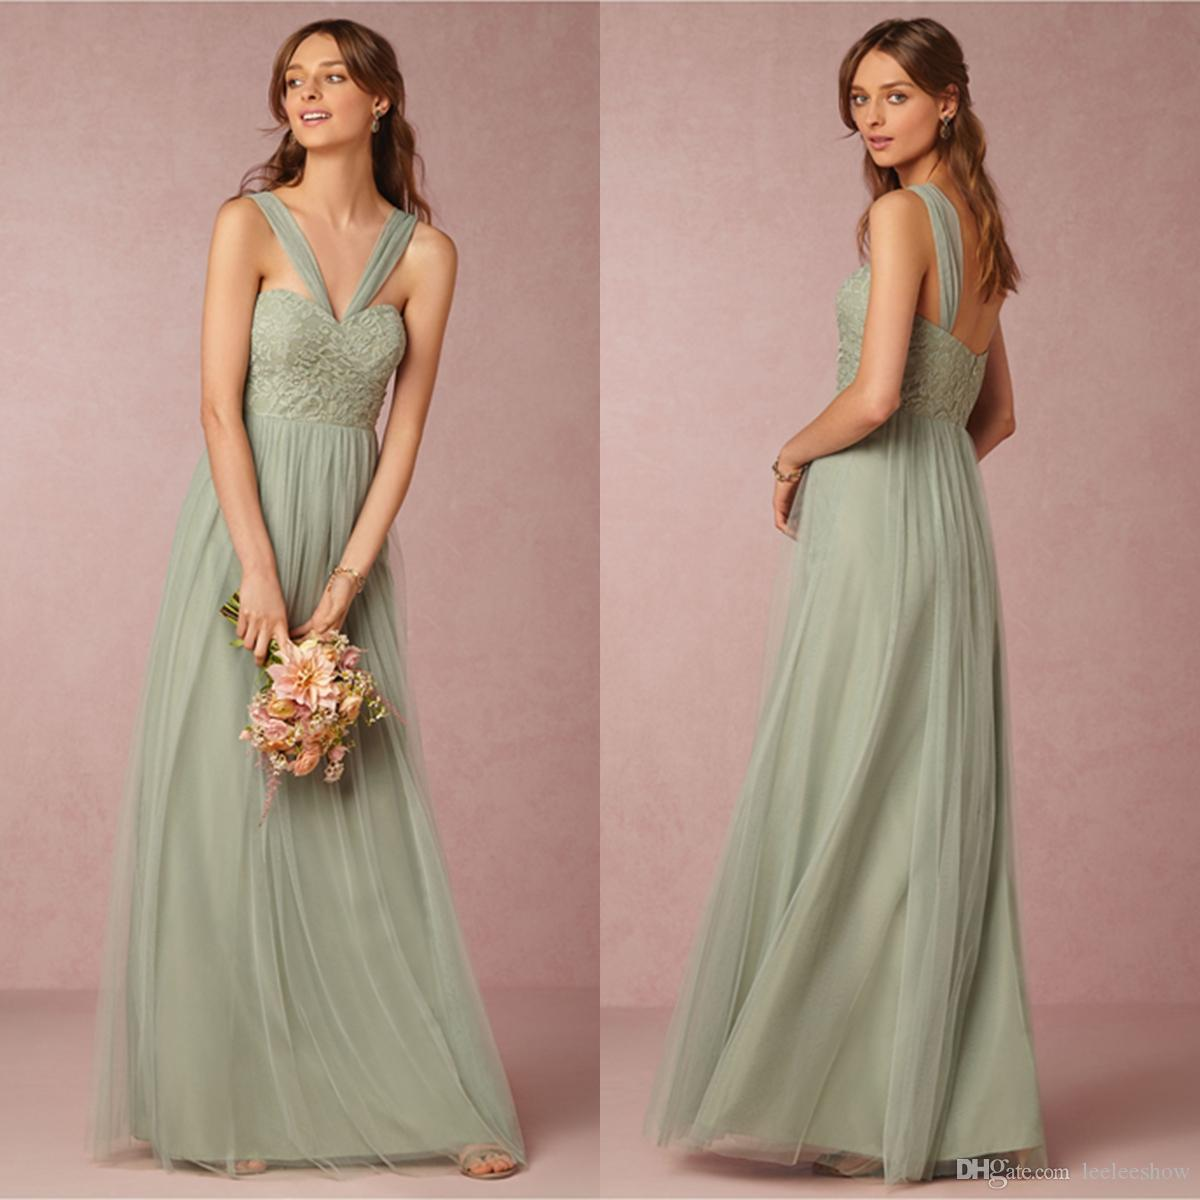 Sage convertible dress bridesmaid dress green tulle removable sage convertible dress bridesmaid dress green tulle removable strap long sweetheart formal dresses cheap 2014 bhldn wedding party dresses white dresses ombrellifo Choice Image